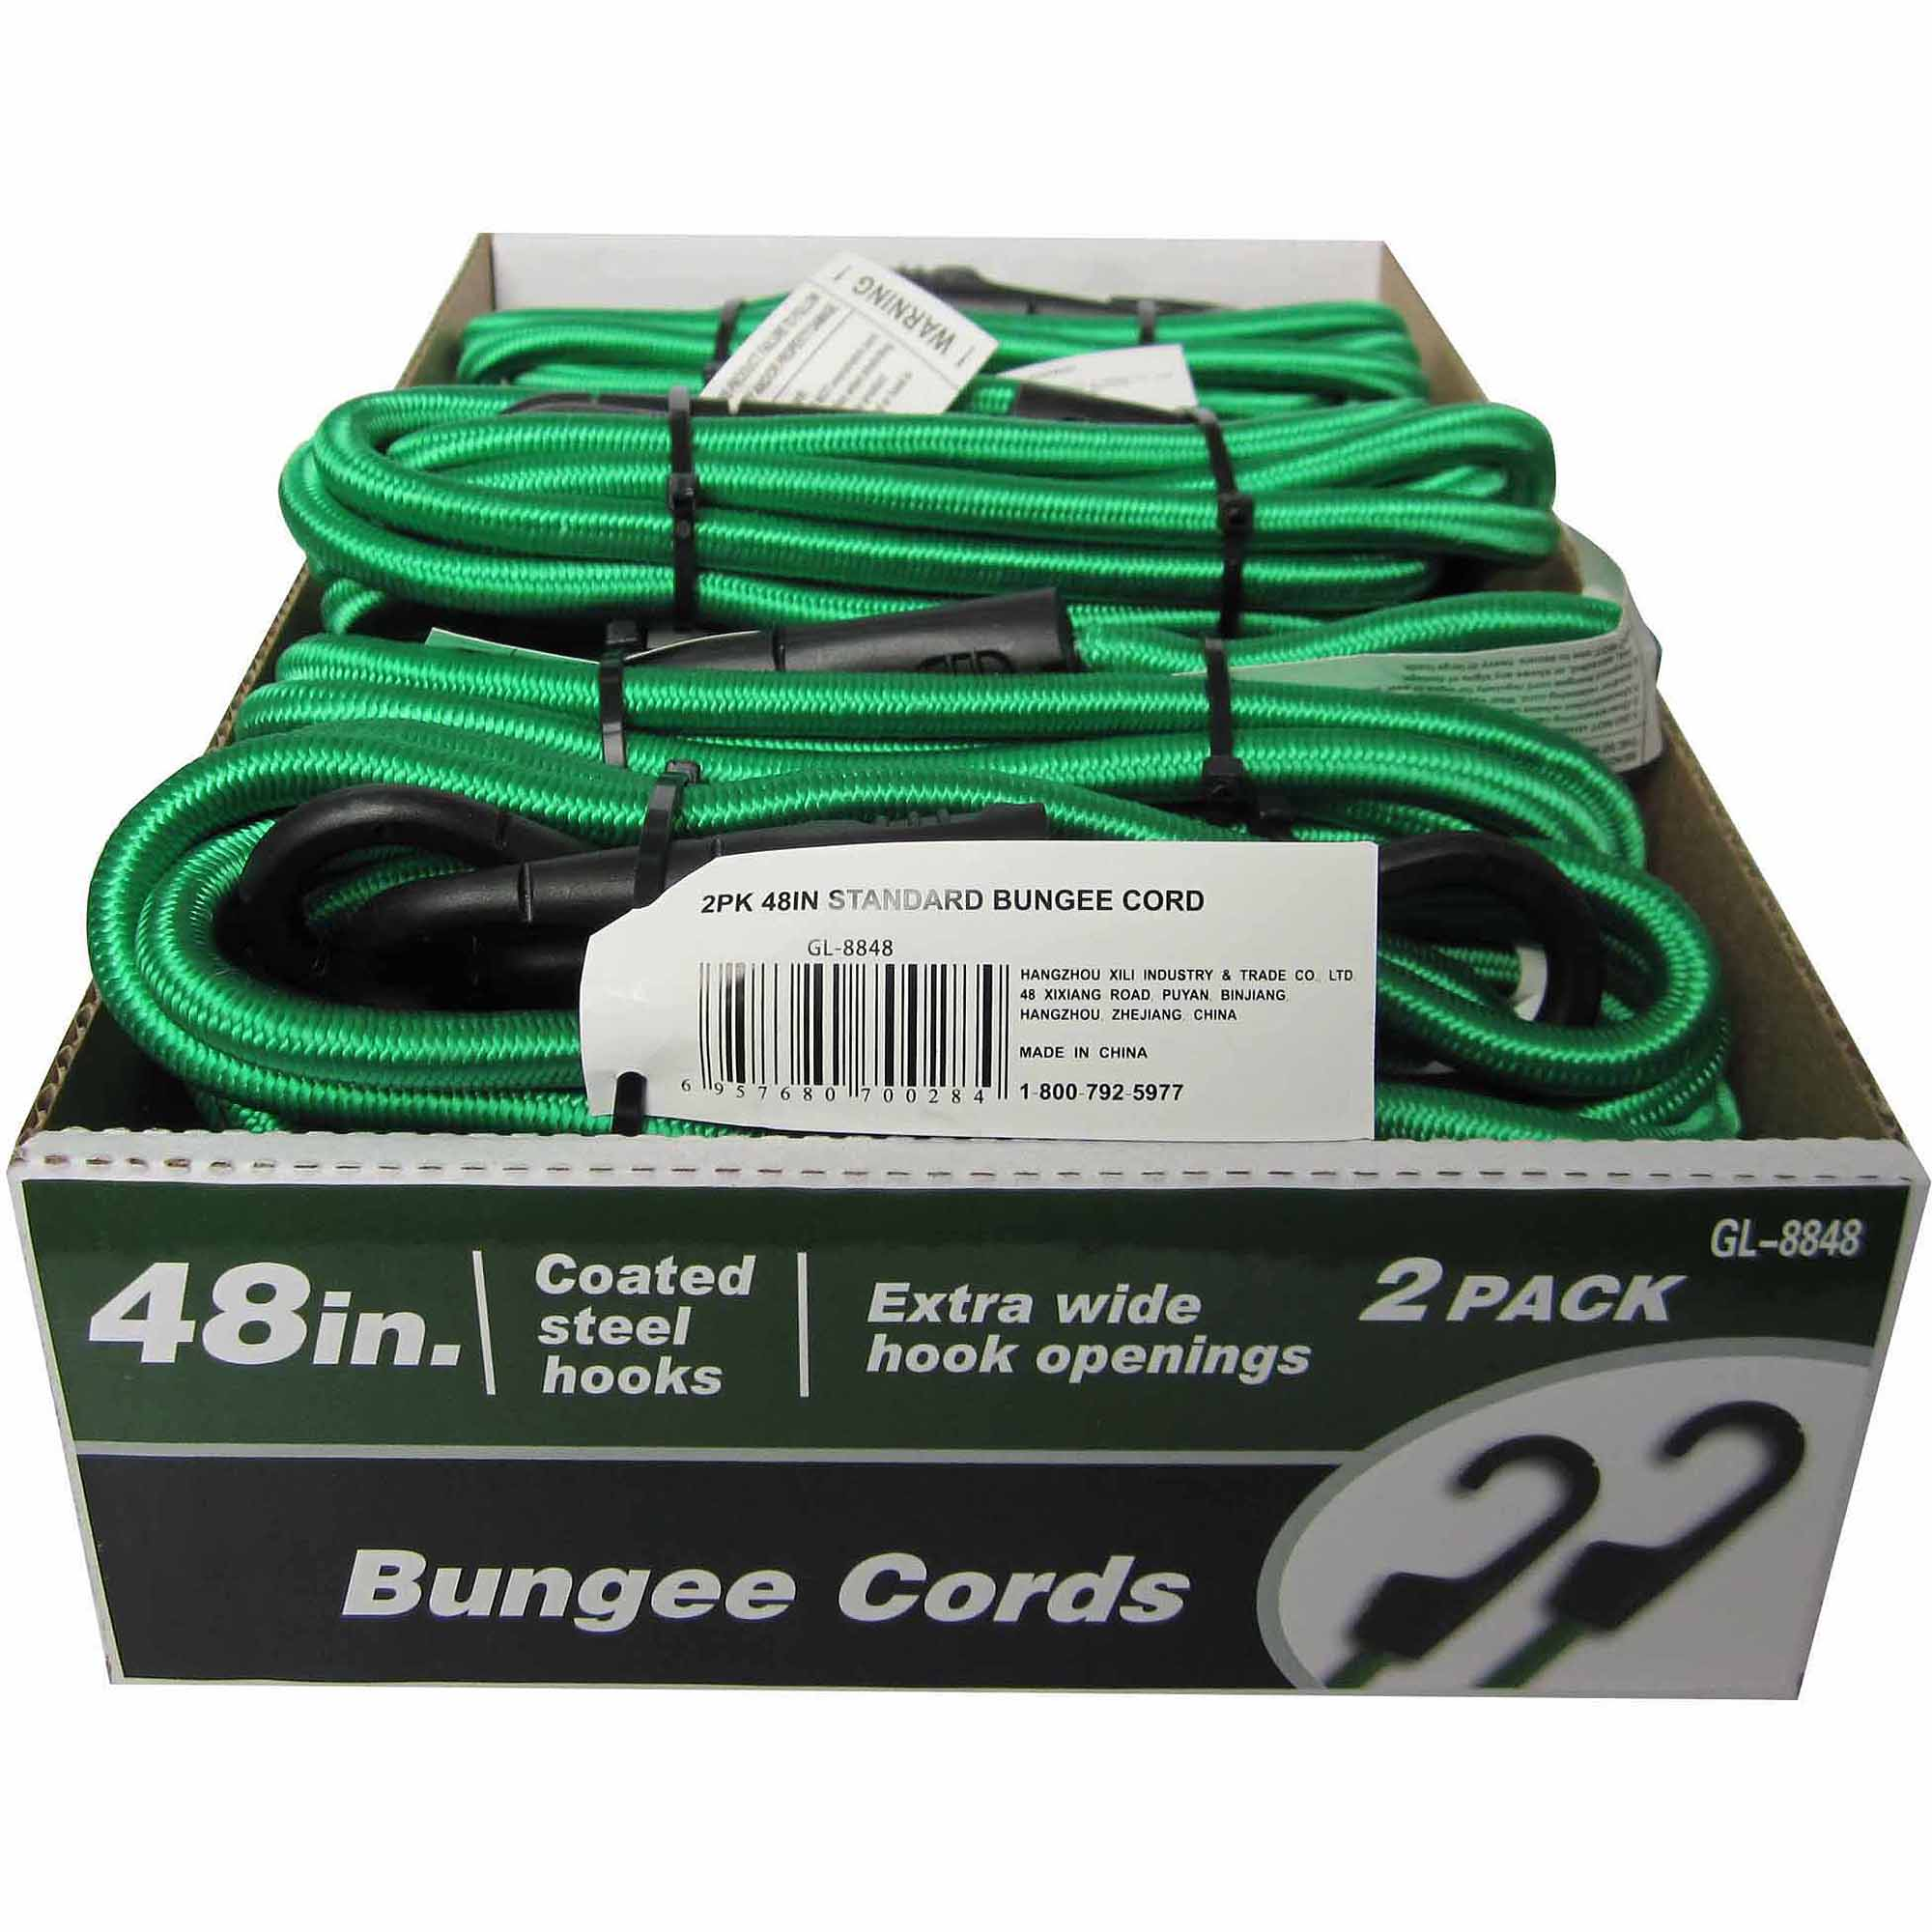 "48"" Standard Bungee Cord, 2 Pack"